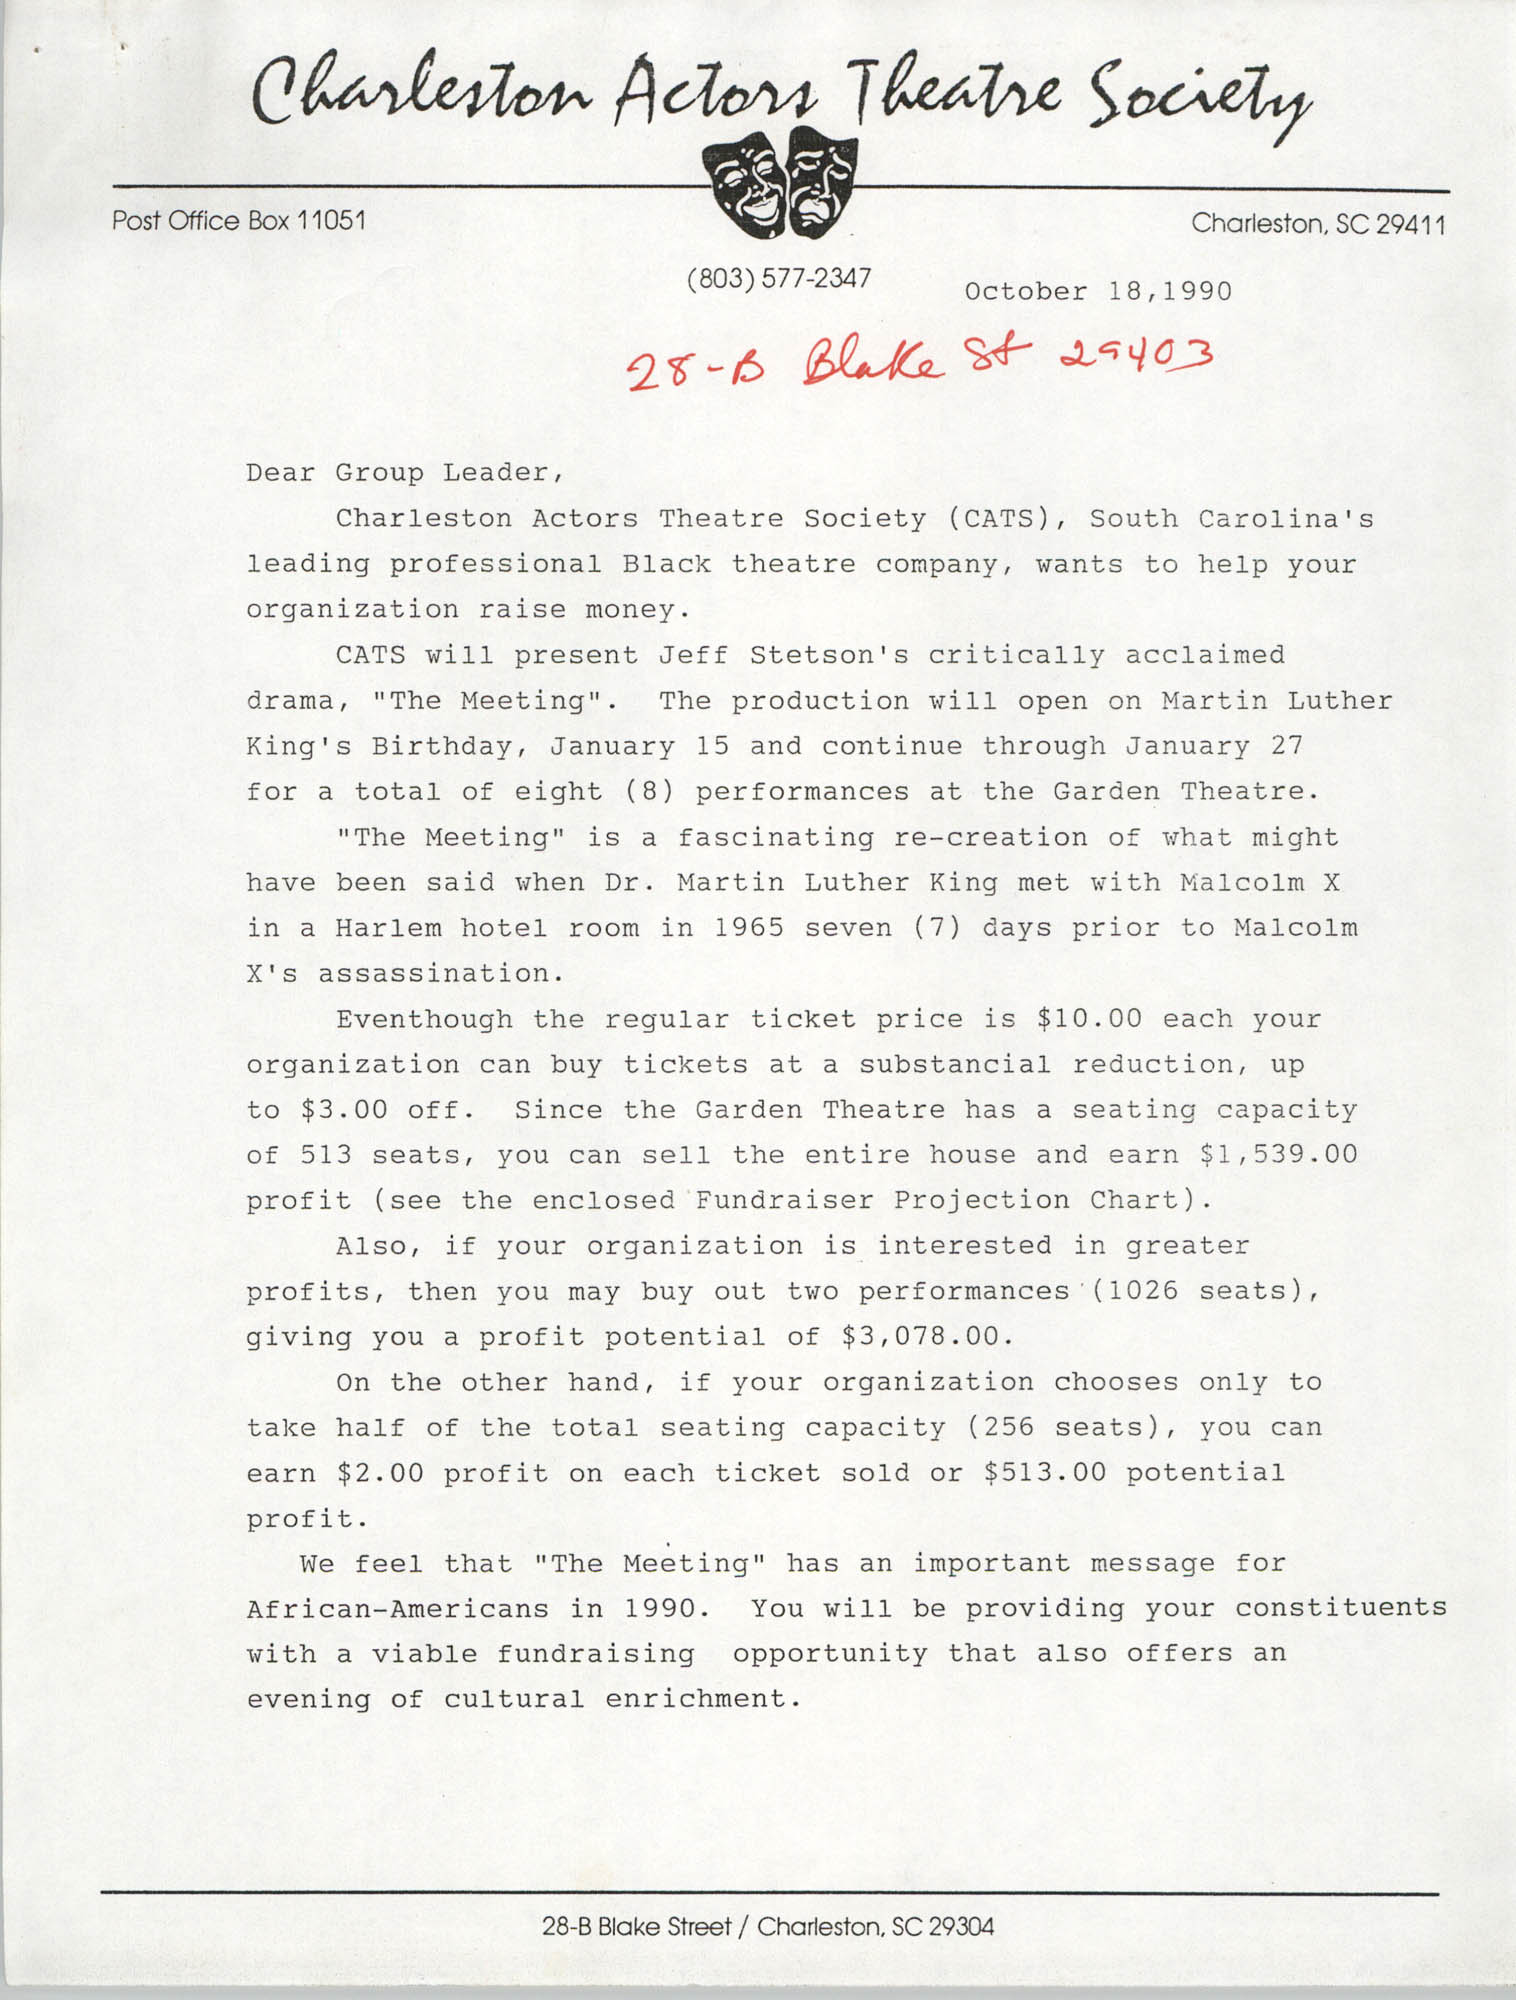 Letter from Garey A. Hyatt to a Group Leader, October 18, 1990